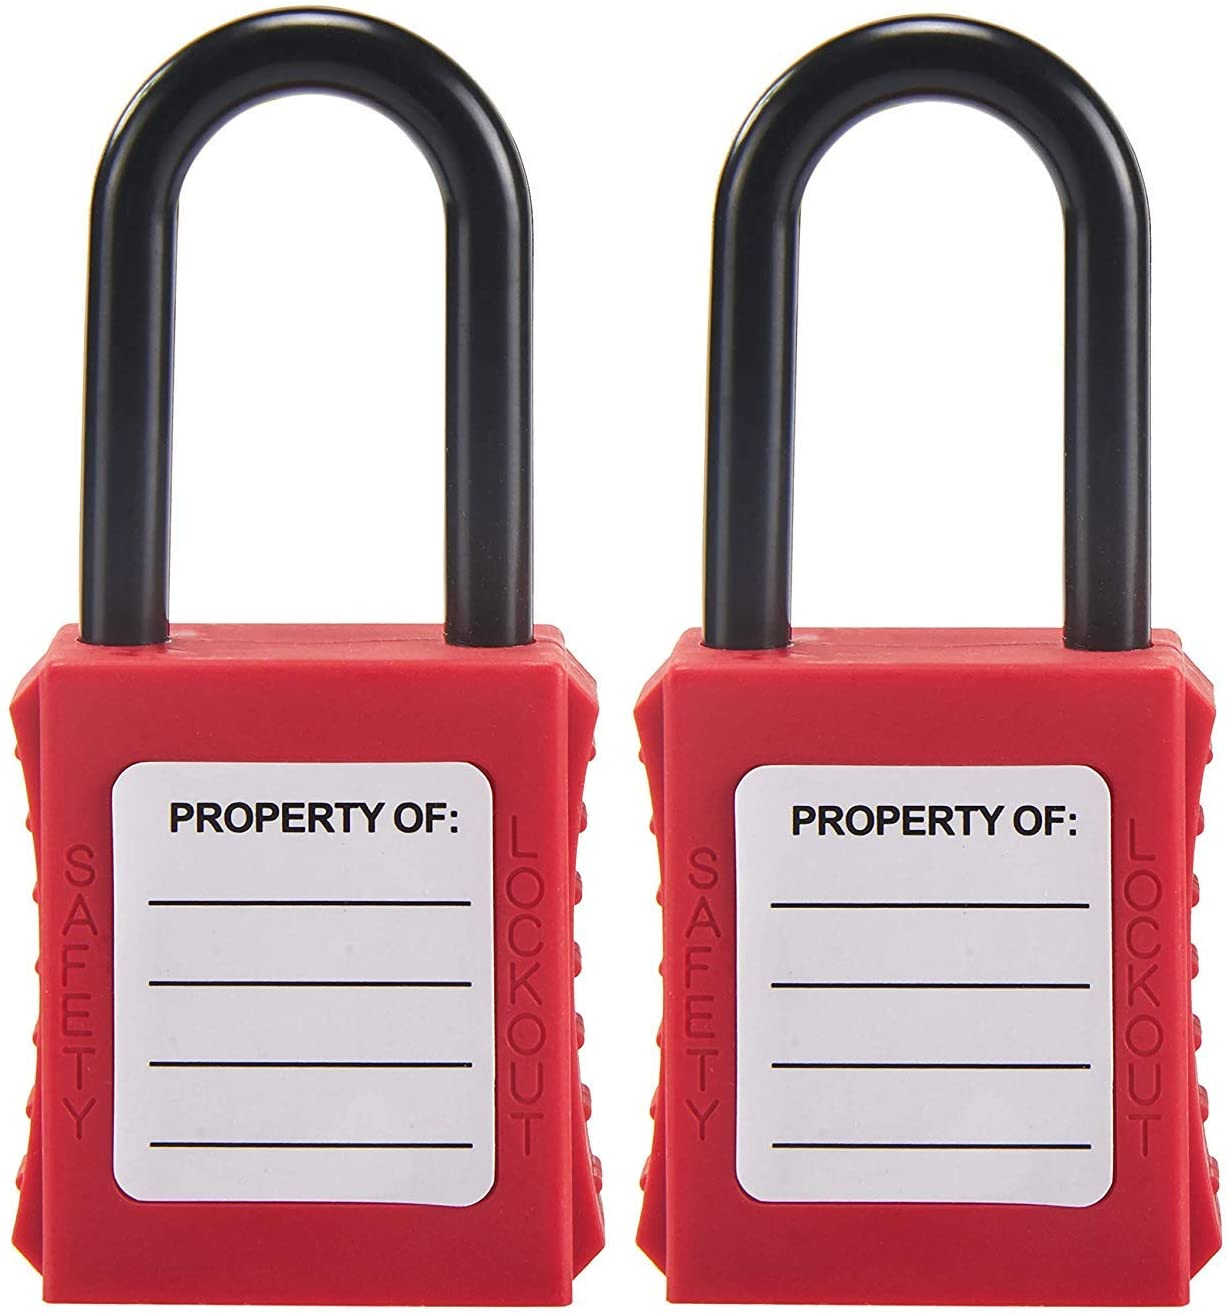 Holulo keyed Different Lockout Tagout Safety Padlock for Chemical Electric Industrial Automotive (1-1/2